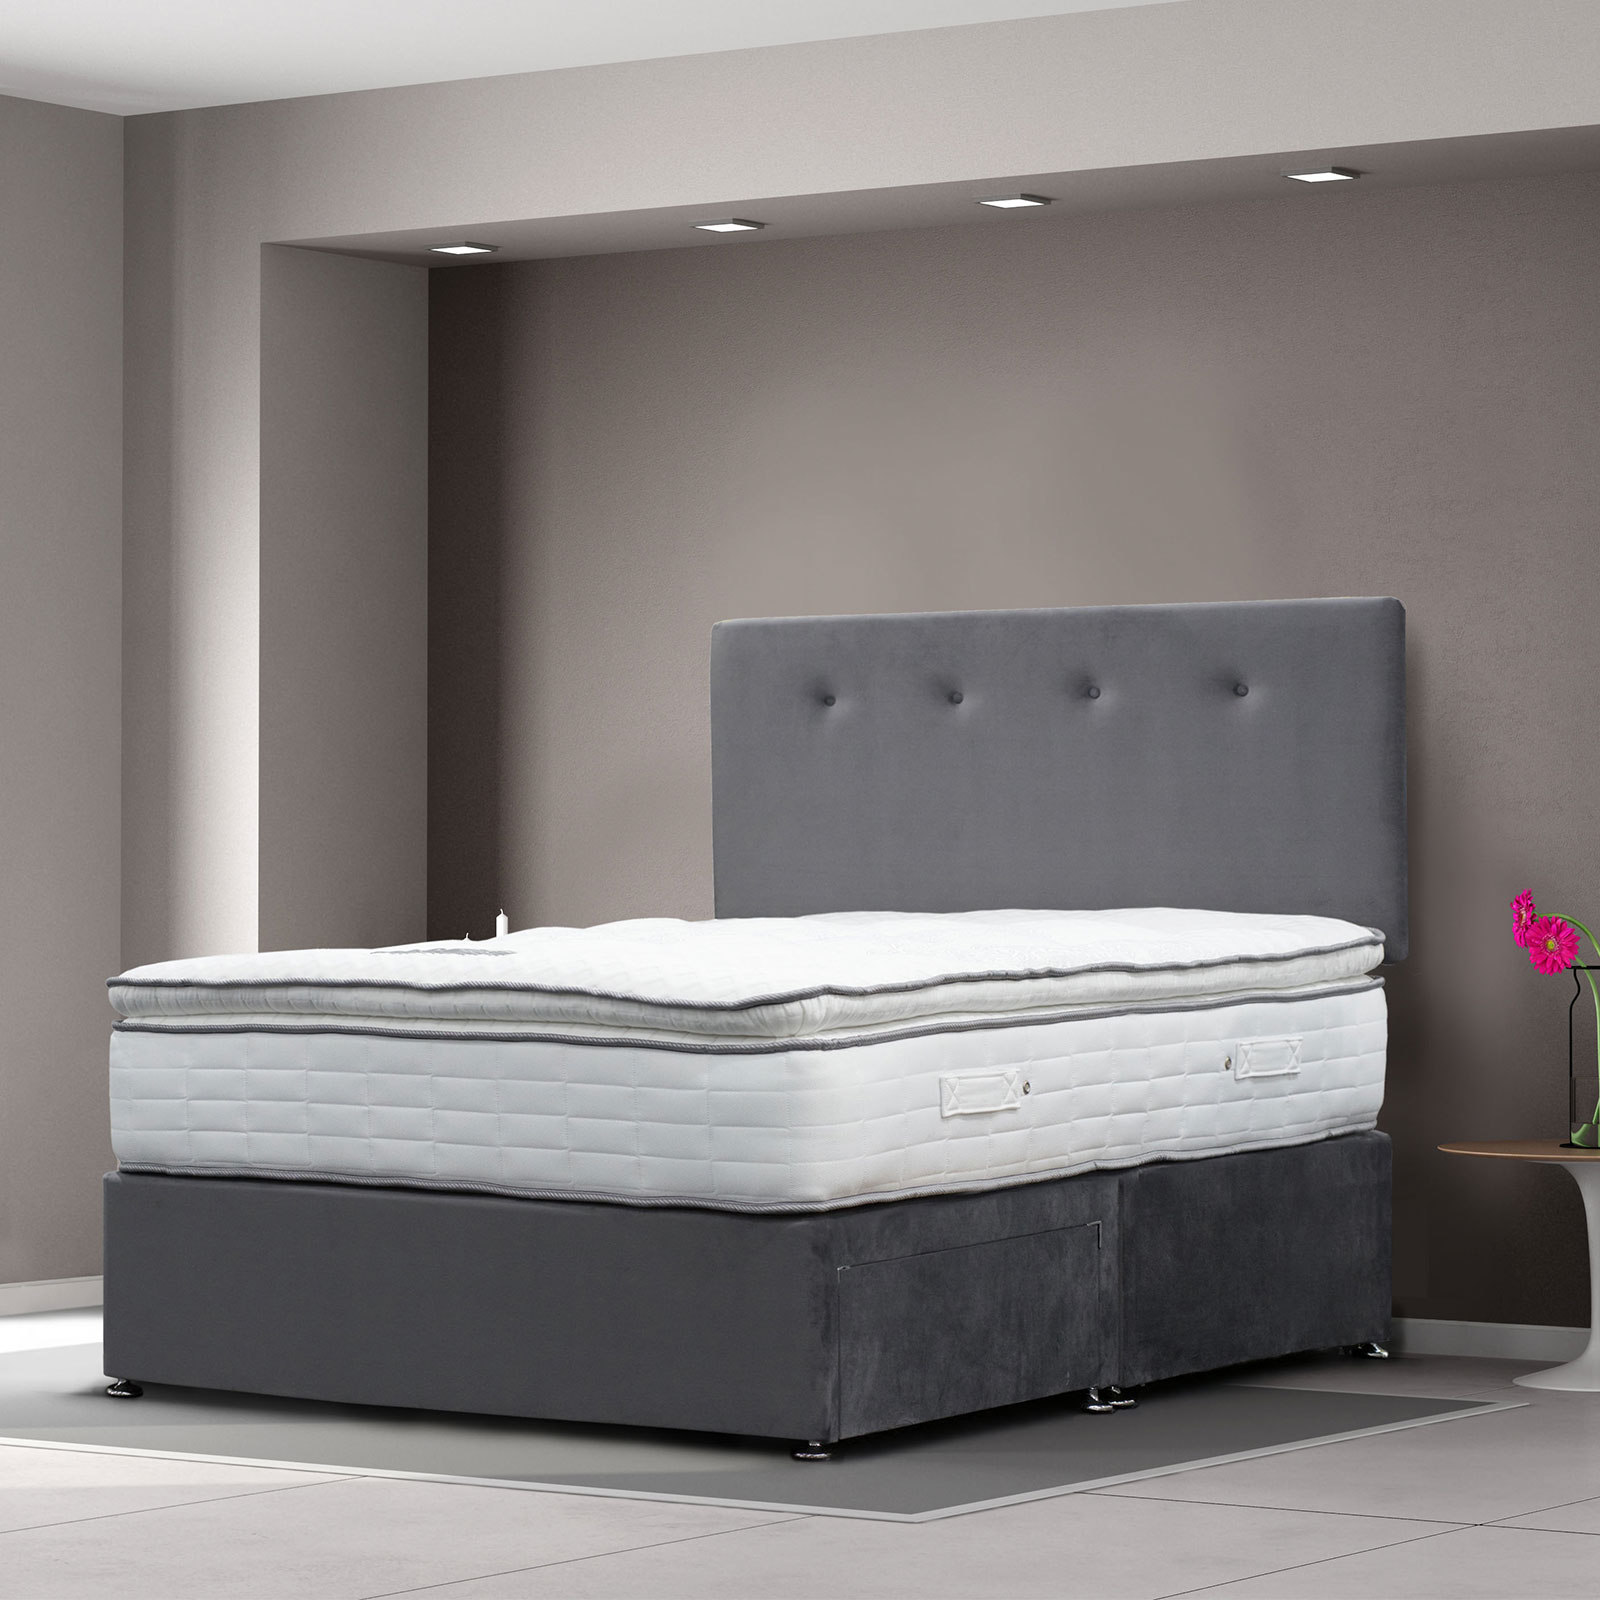 Cagliari Divan With 1000 Pocket Mattress Inc Headboard